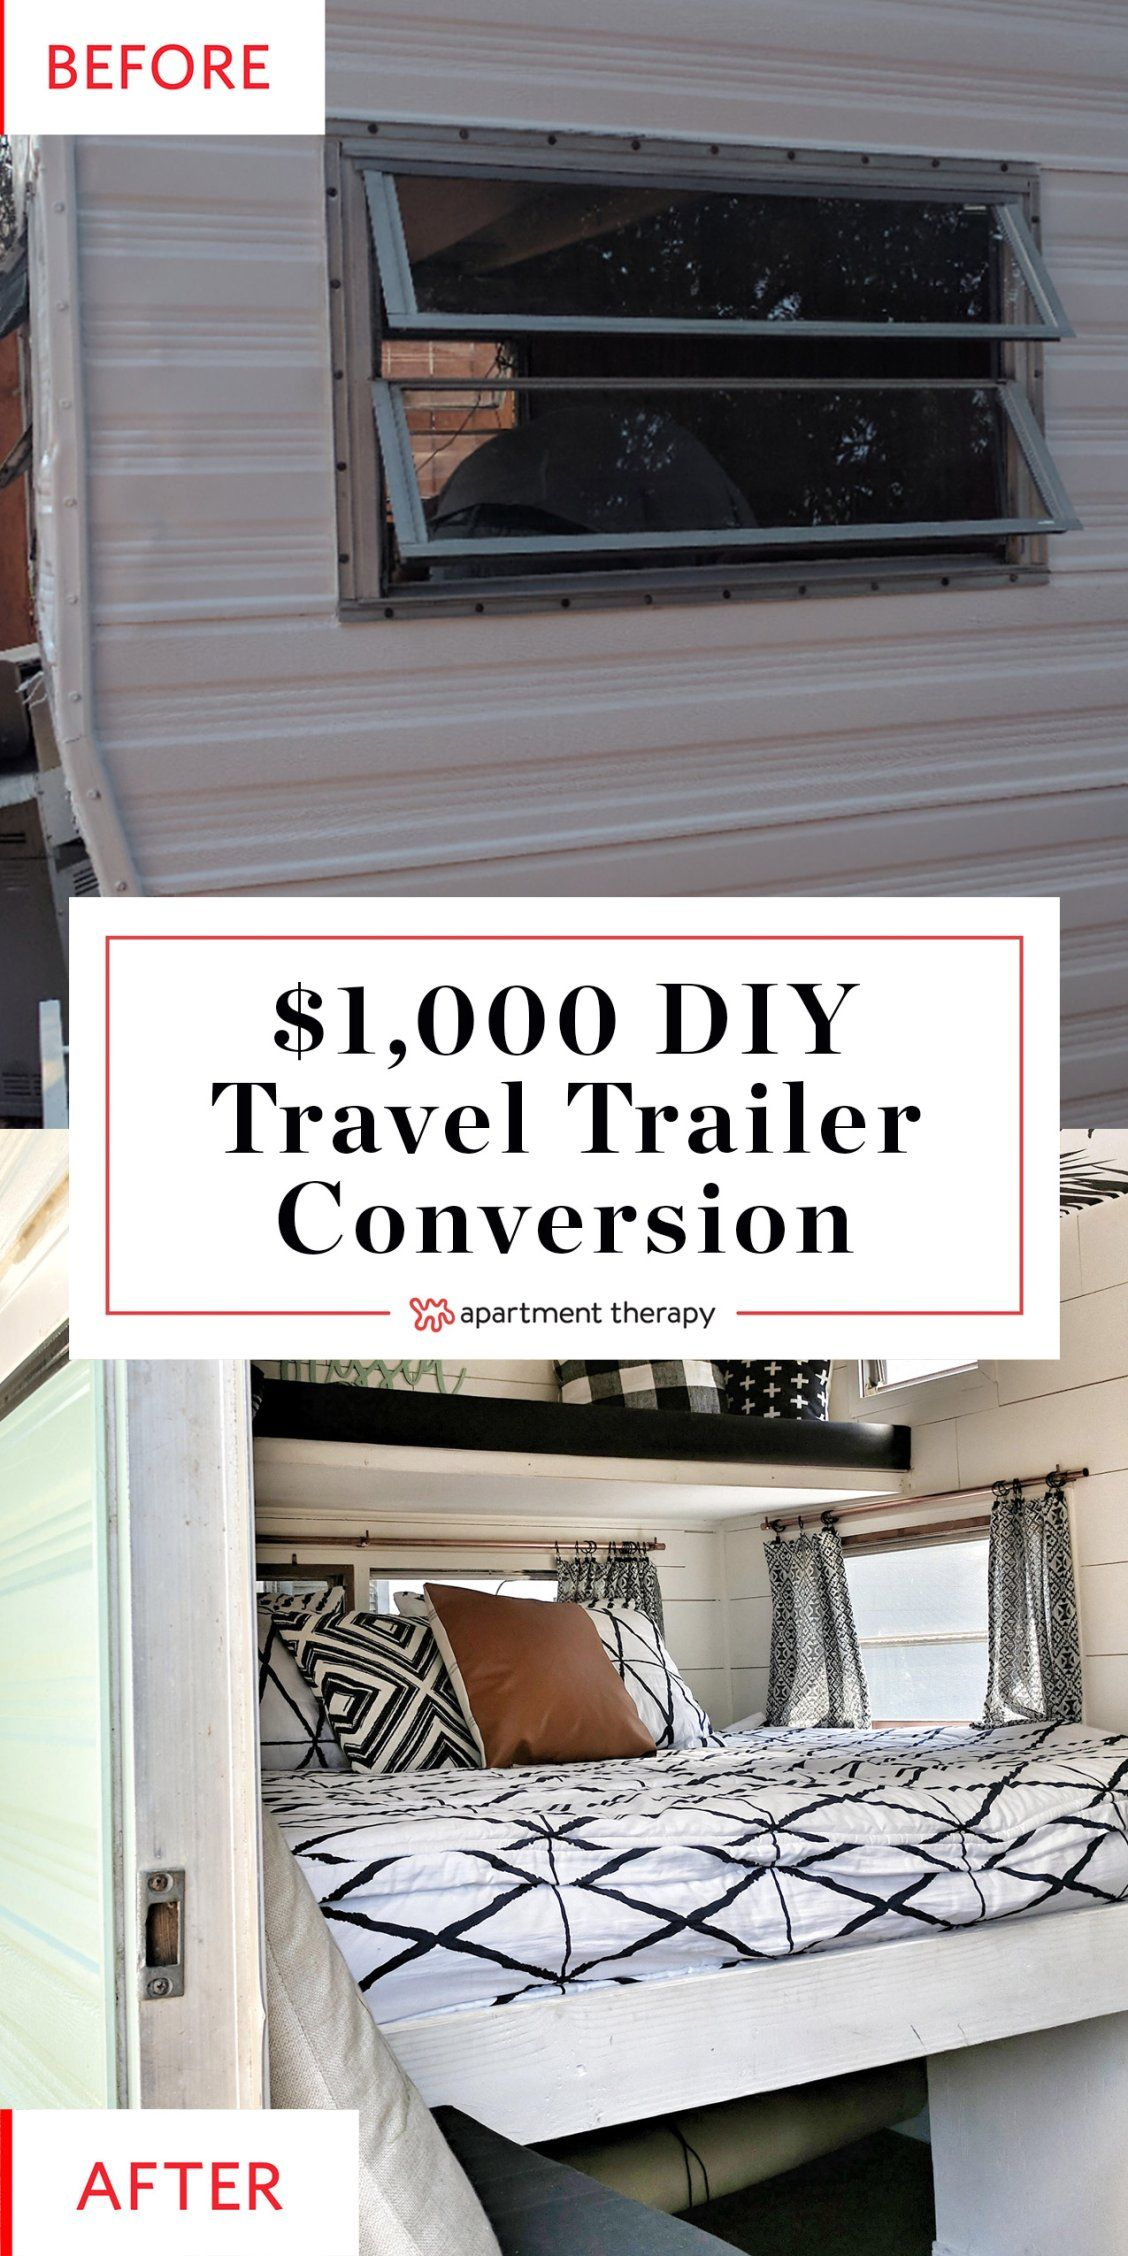 Before And After This Travel Trailer S 1k Redo Will Knock Your Boho Socks Off Vintage Camper Remodel Diy Camper Remodel Diy Travel Trailer